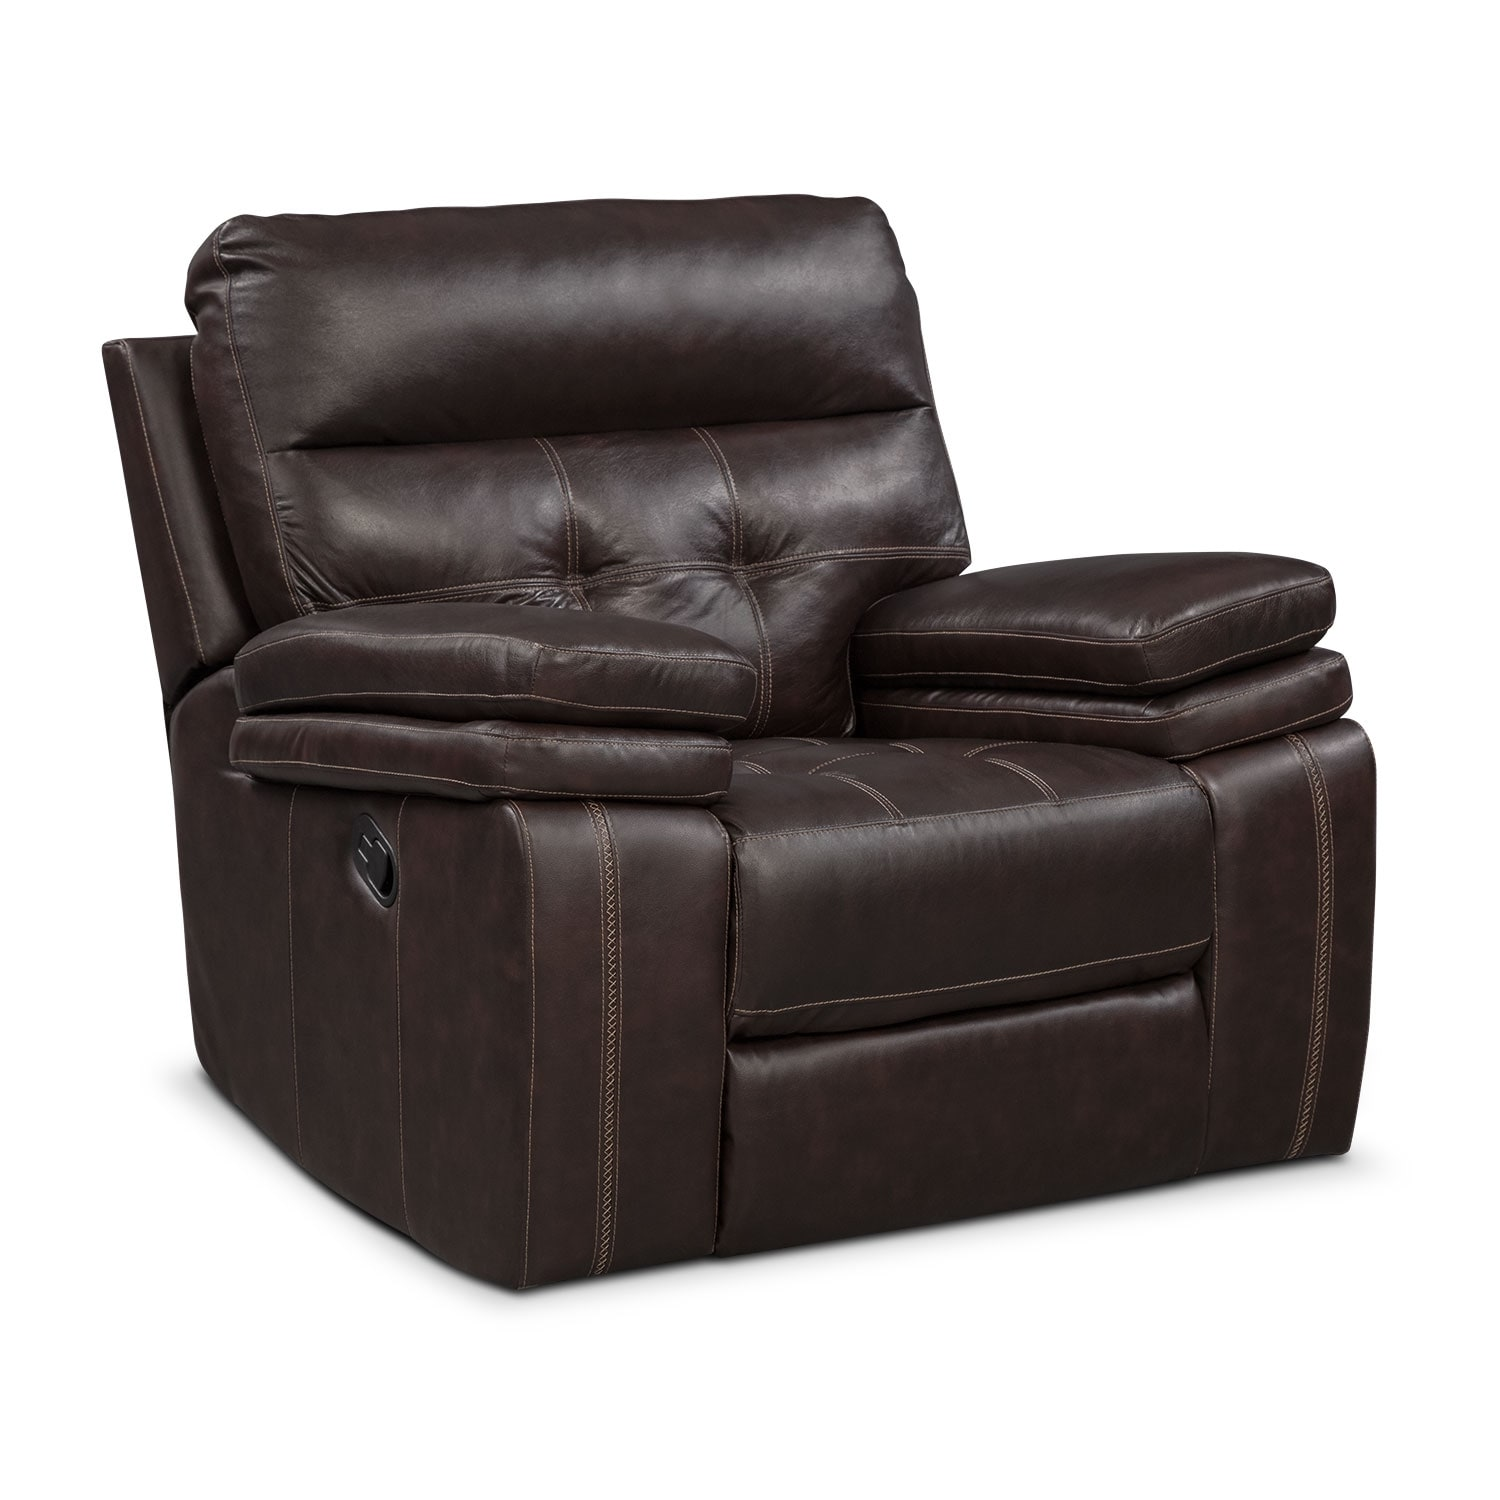 Recliners Amp Rockers Living Room Seating Value City